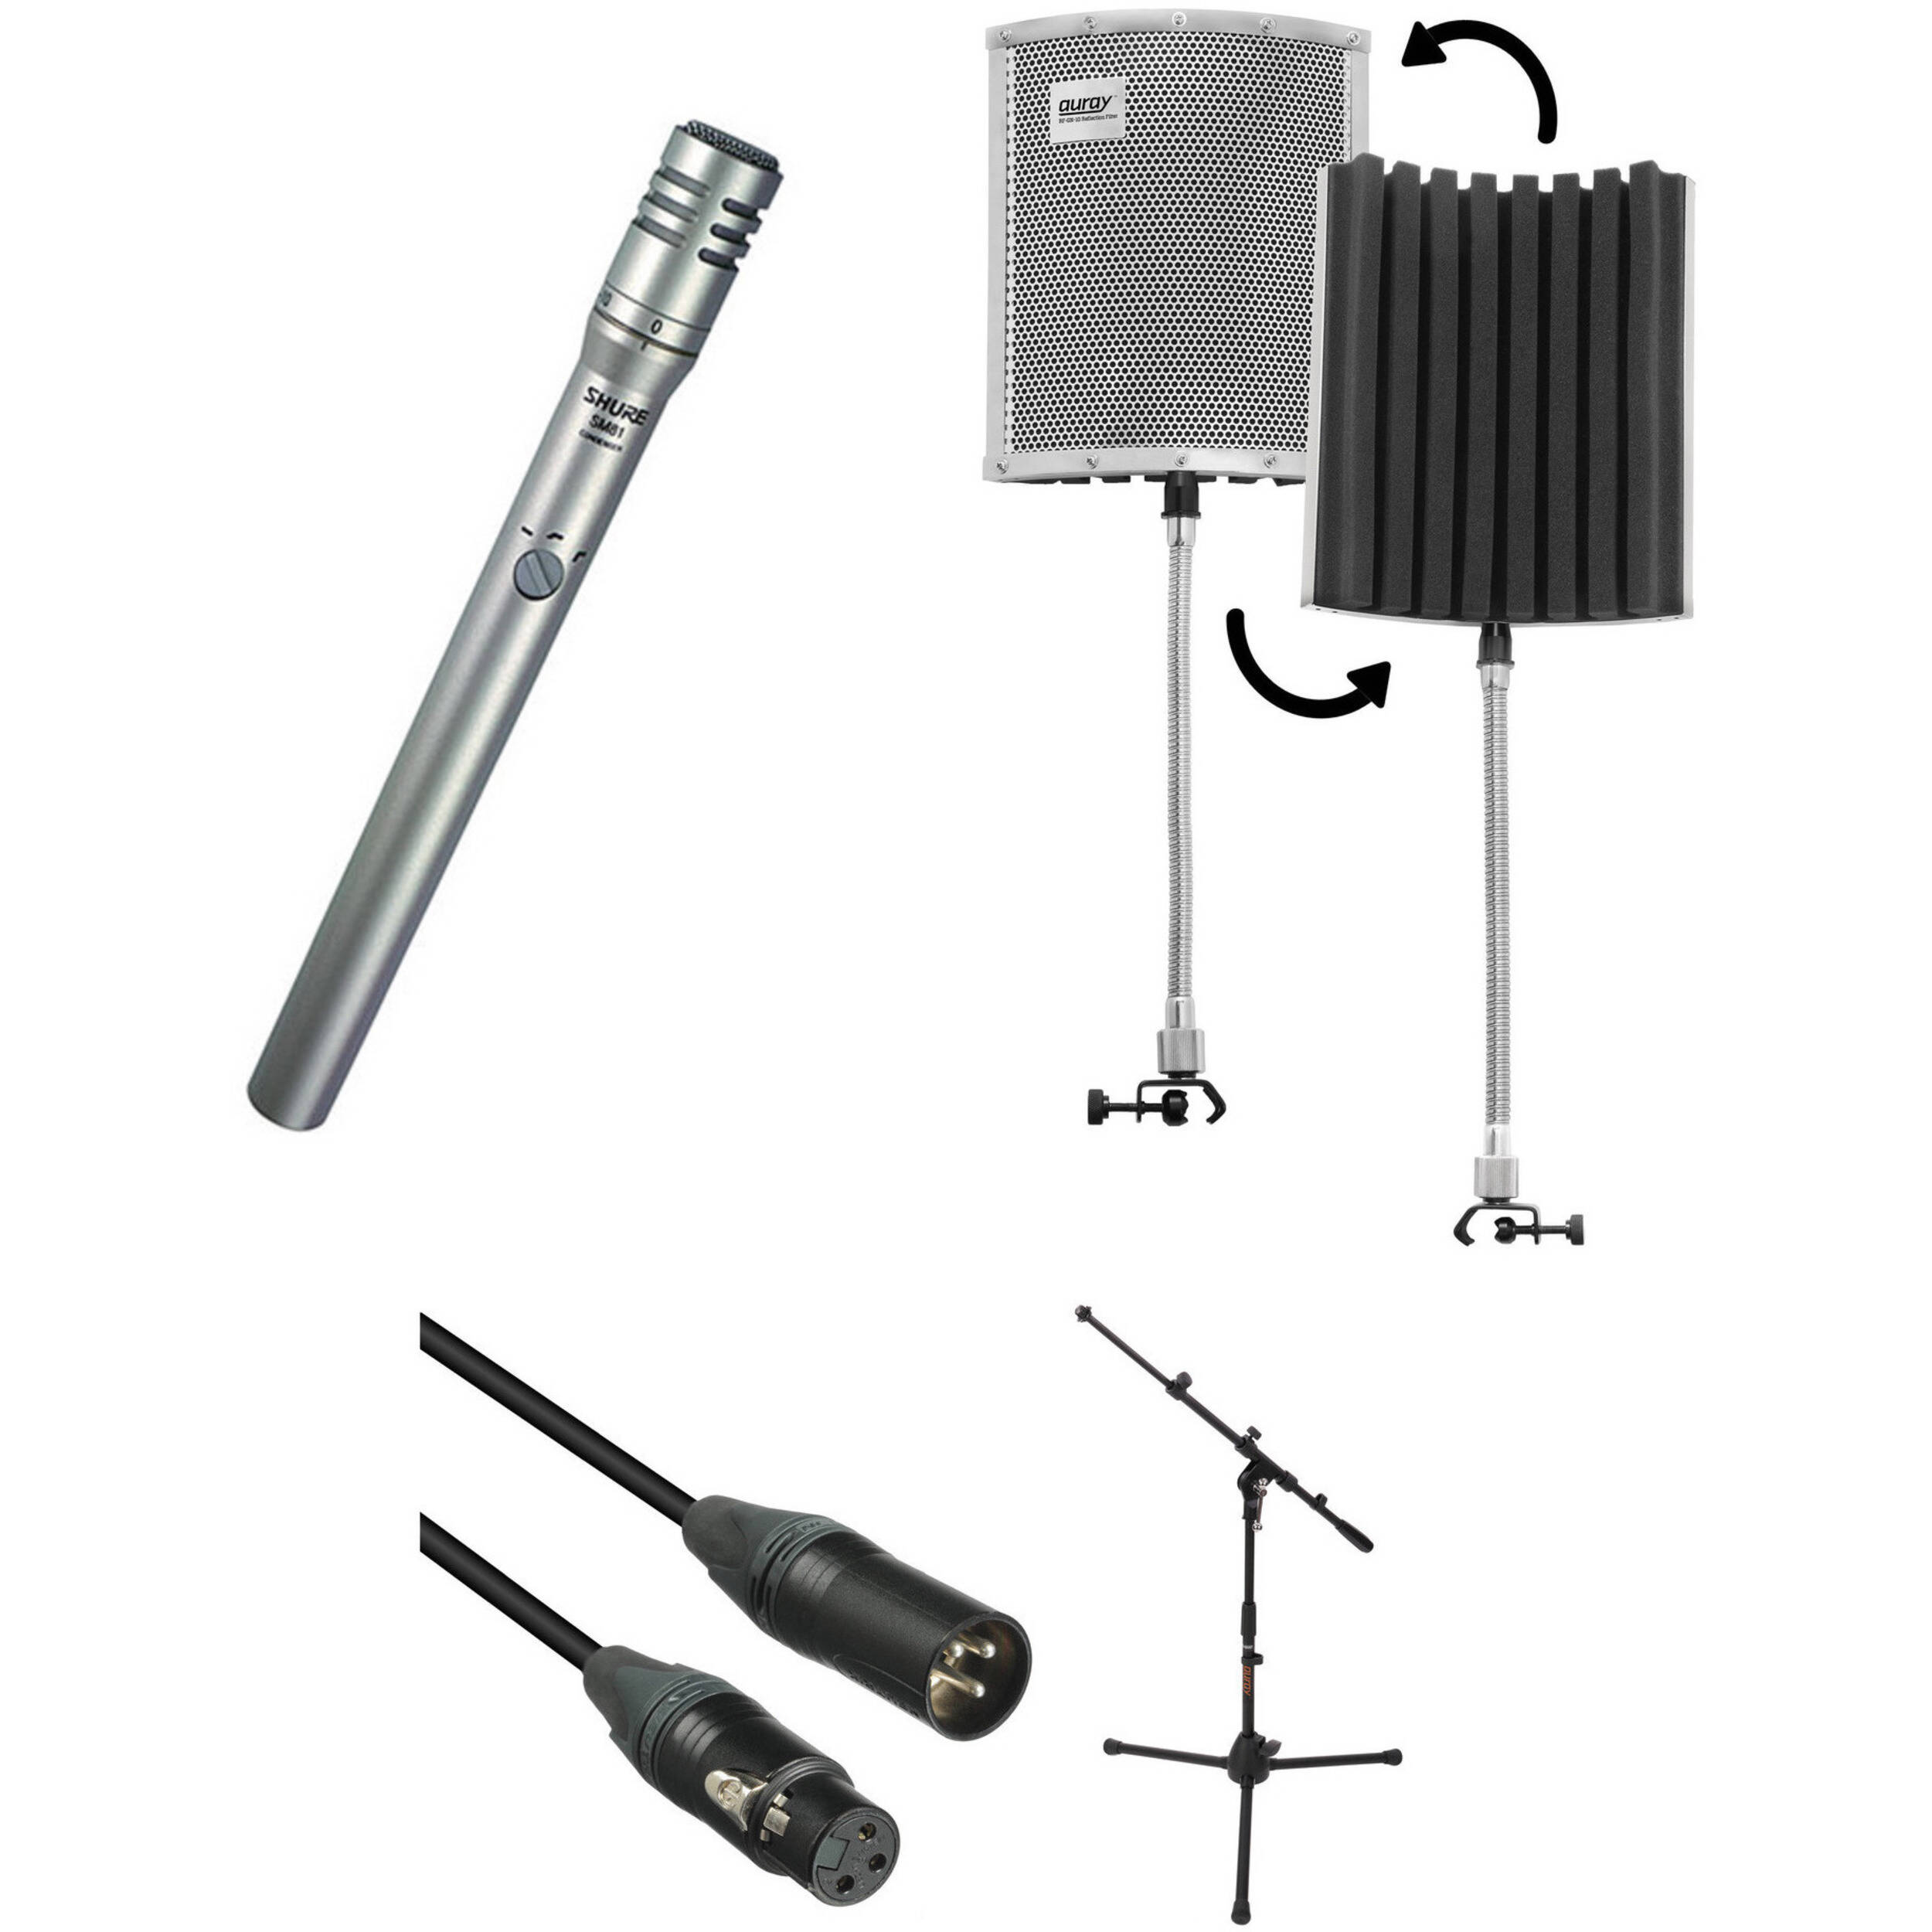 shure sm81 lc microphone kit with reflection filter mic stand. Black Bedroom Furniture Sets. Home Design Ideas